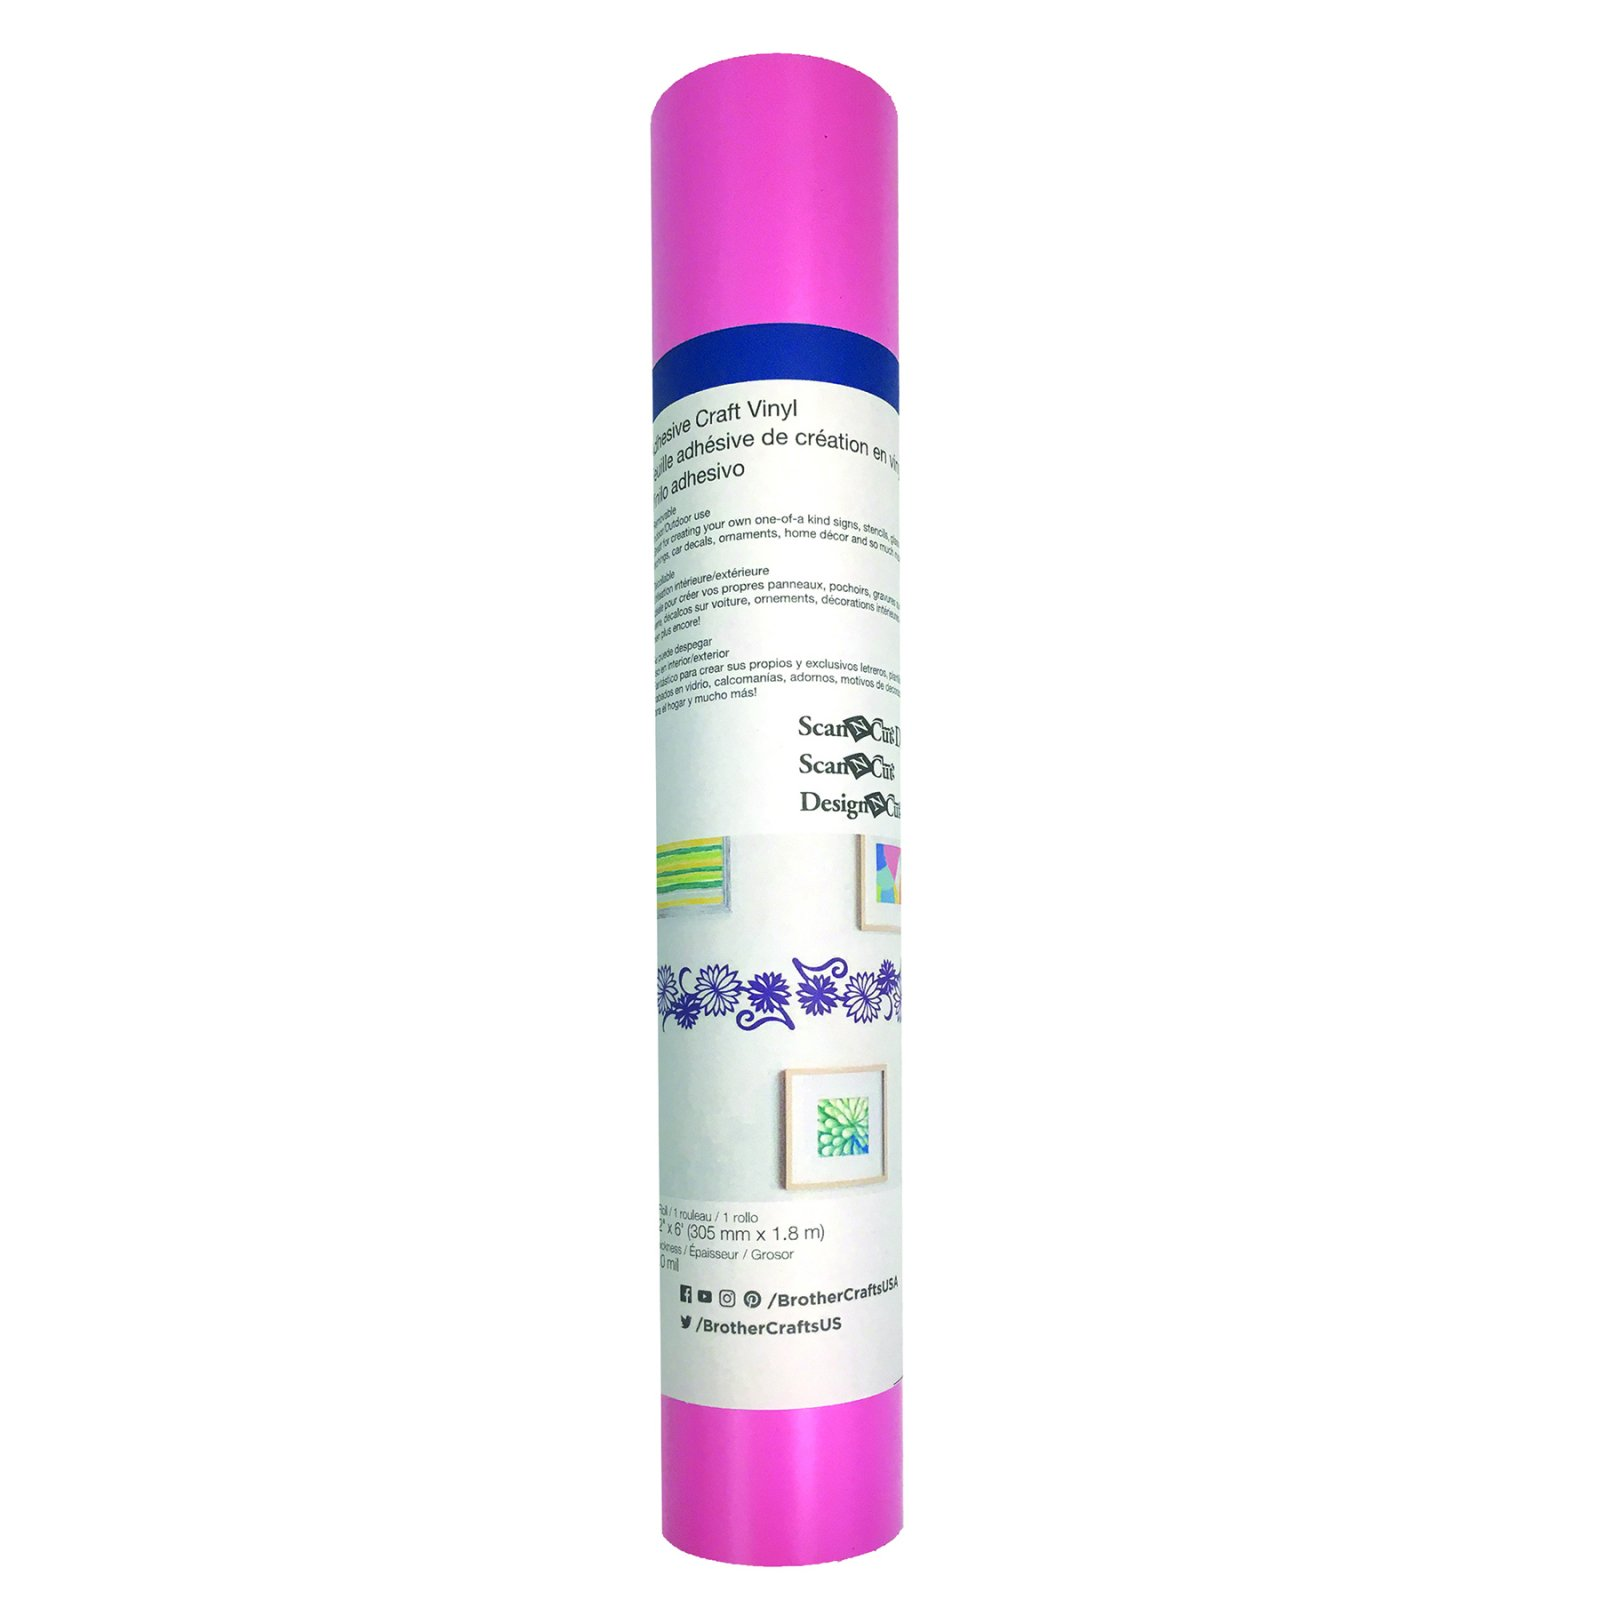 Brother CAVINYLPNKLT Light Pink Adhesive Craft Vinyl